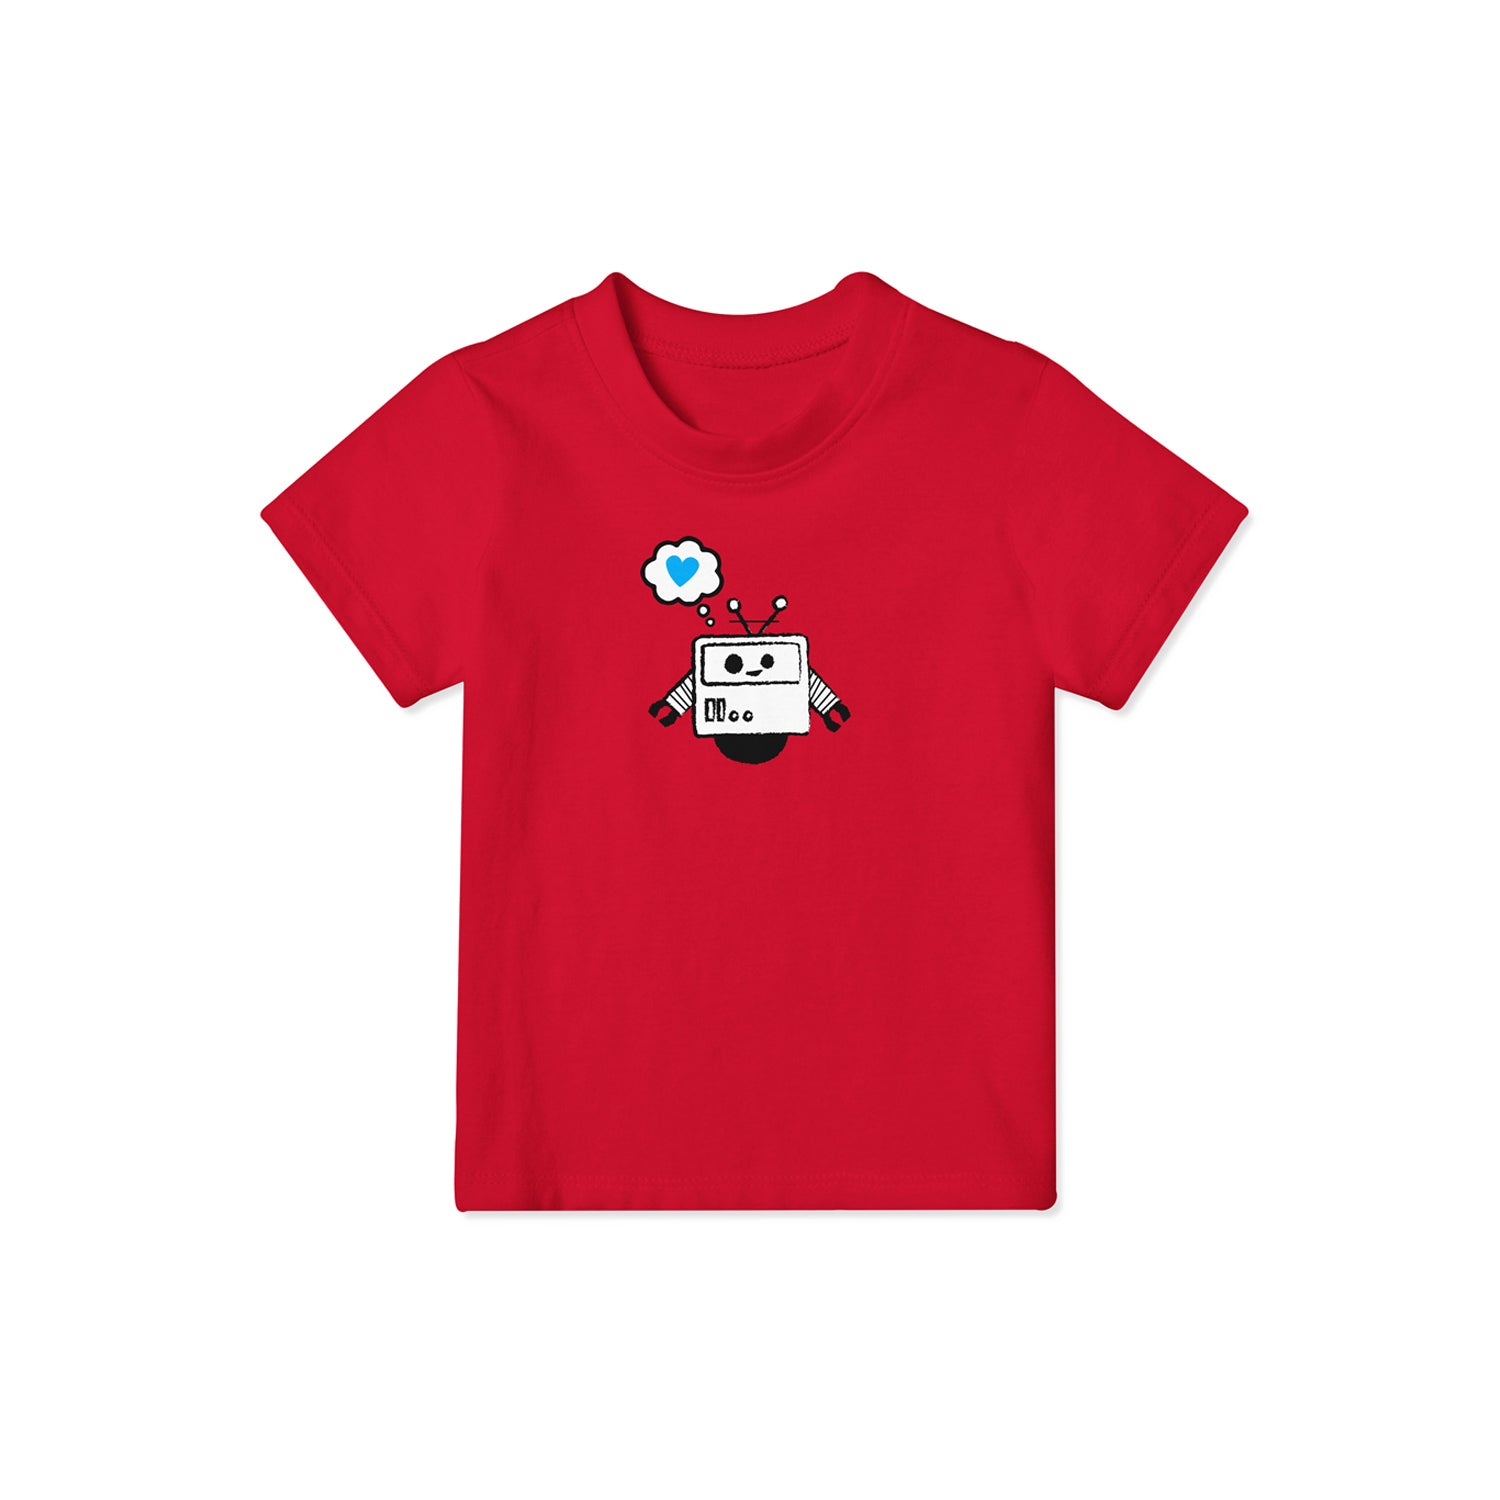 red t shirt for kids with robot design on front